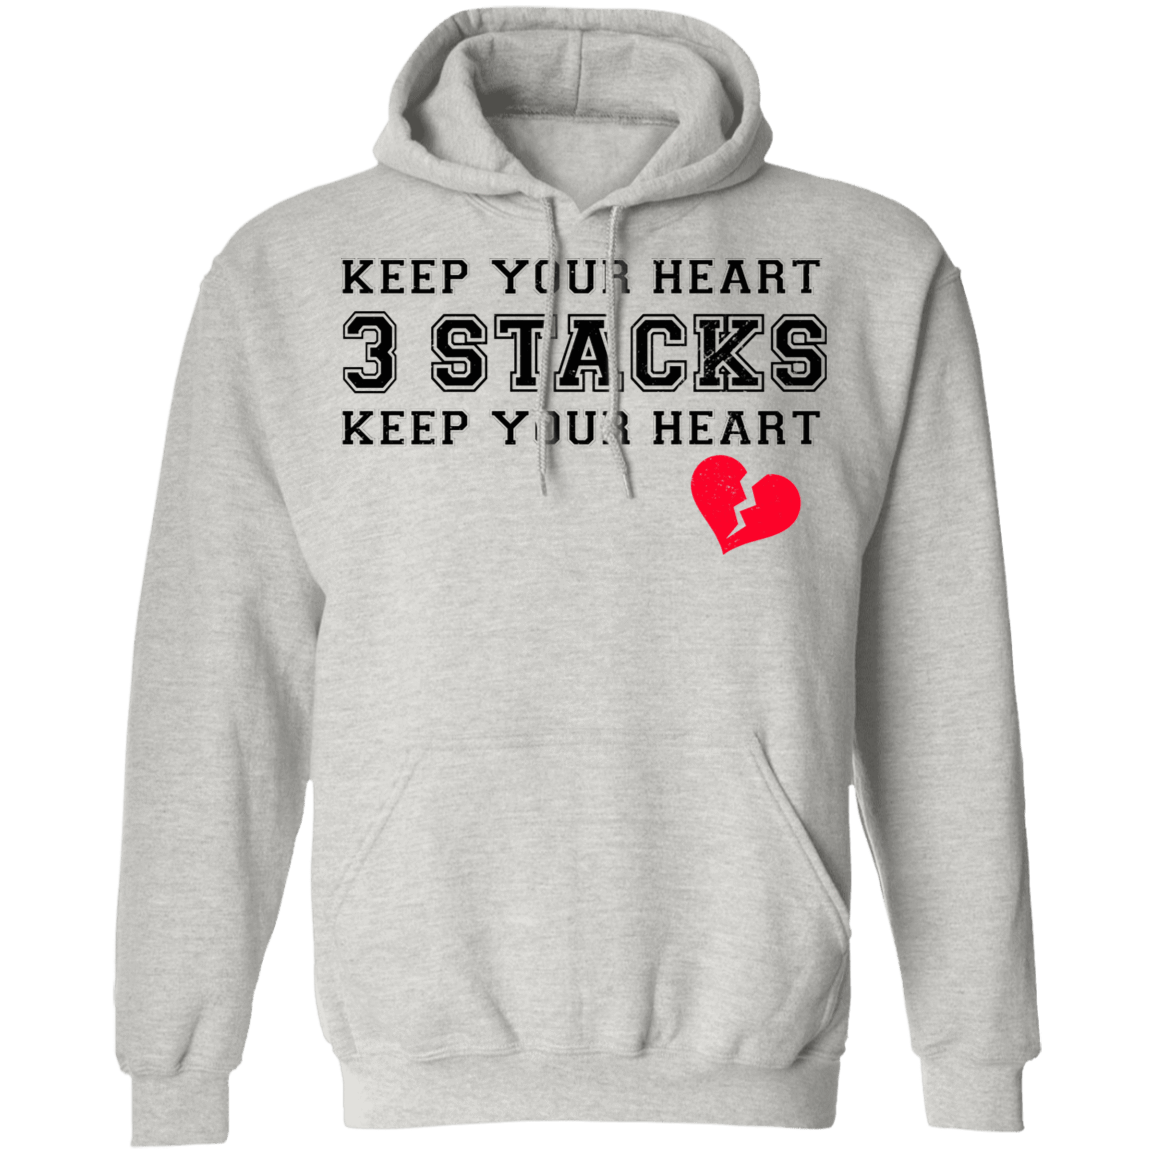 Keep Your Heart 3 Stacks T-Shirts, Hoodies 541-4748-80183507-23071 - Tee Ript